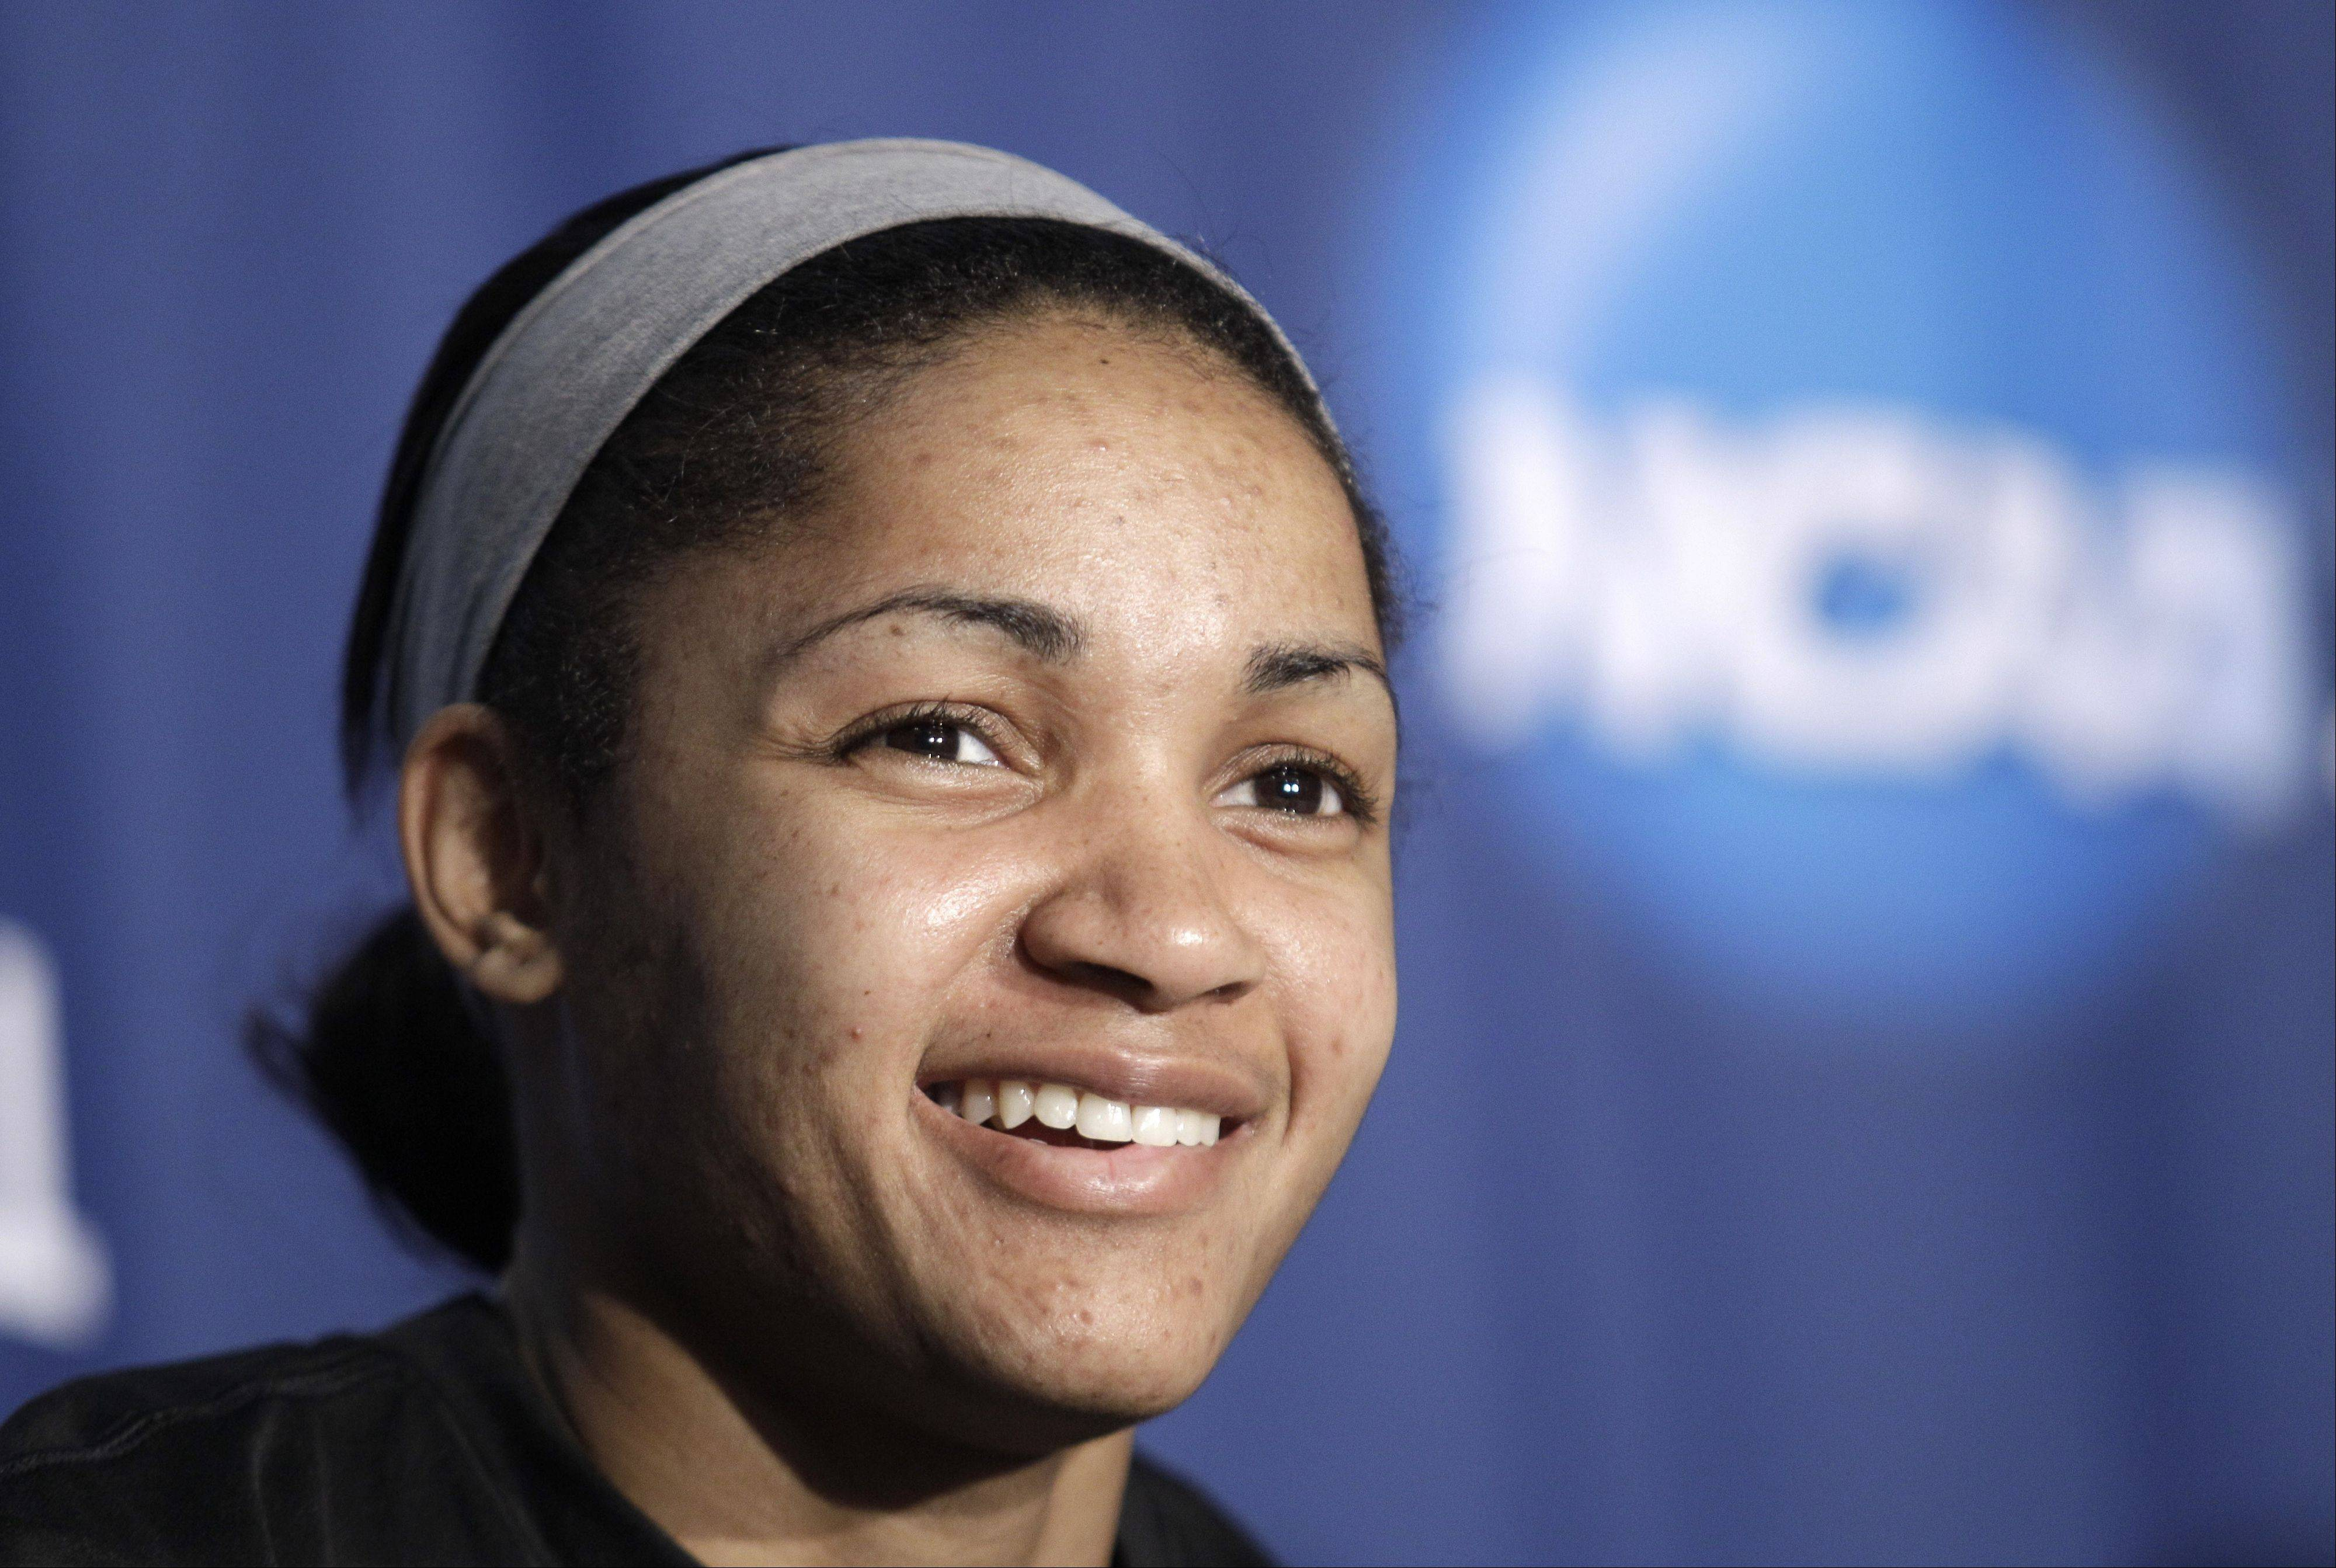 Former Texas A&M guard Sydney Carter was released by the Chicago Sky. Carter, the Sky's 2012 draft pick, played in just one WNBA game for the Sky.